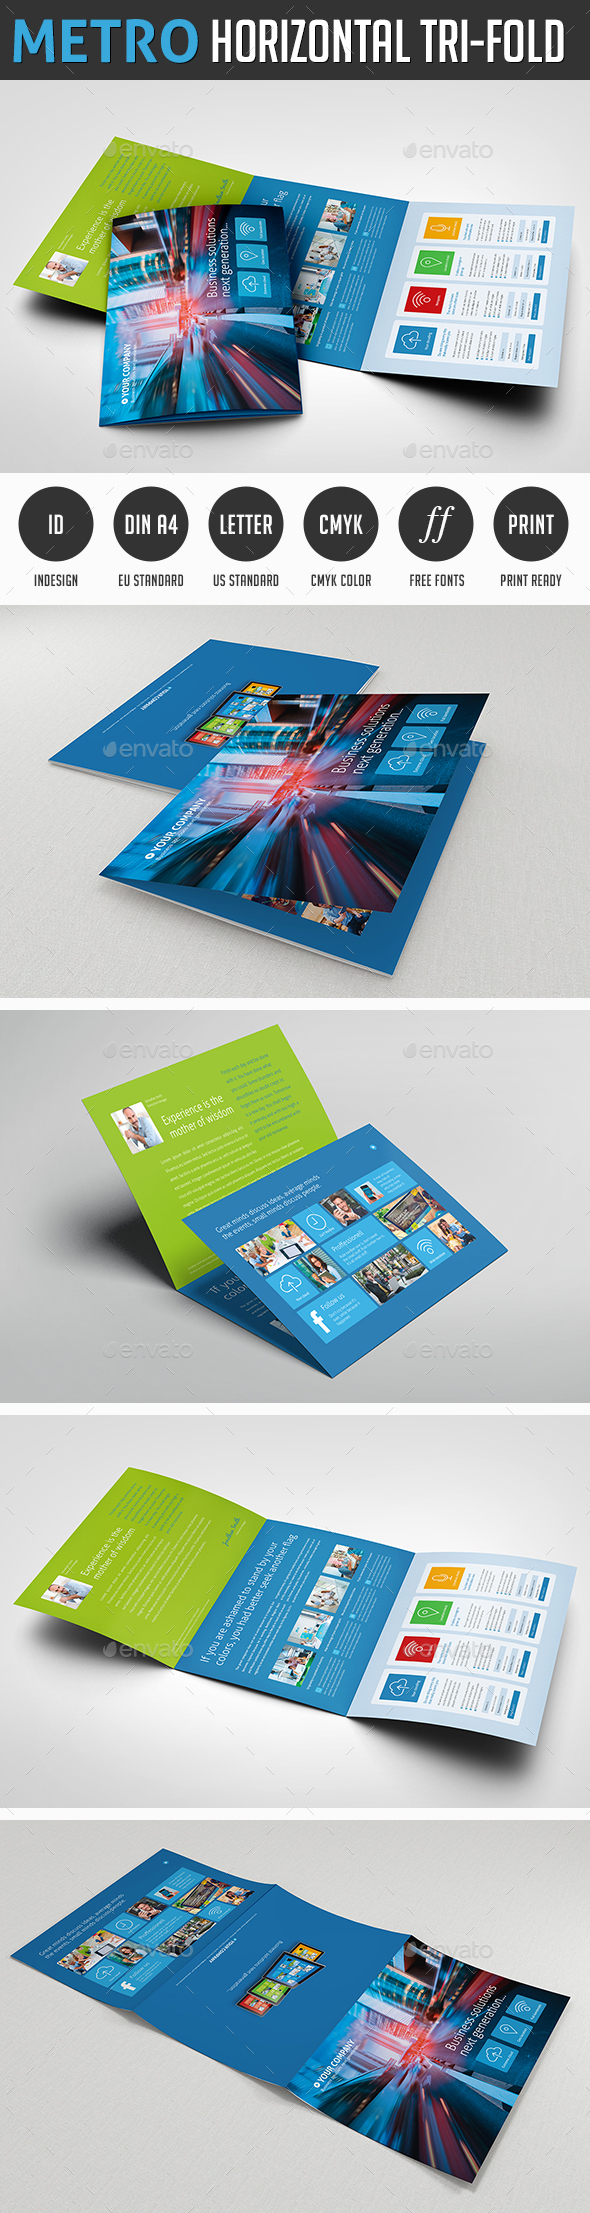 Horizontal Flyer Graphics Designs Templates From GraphicRiver - Horizontal brochure template